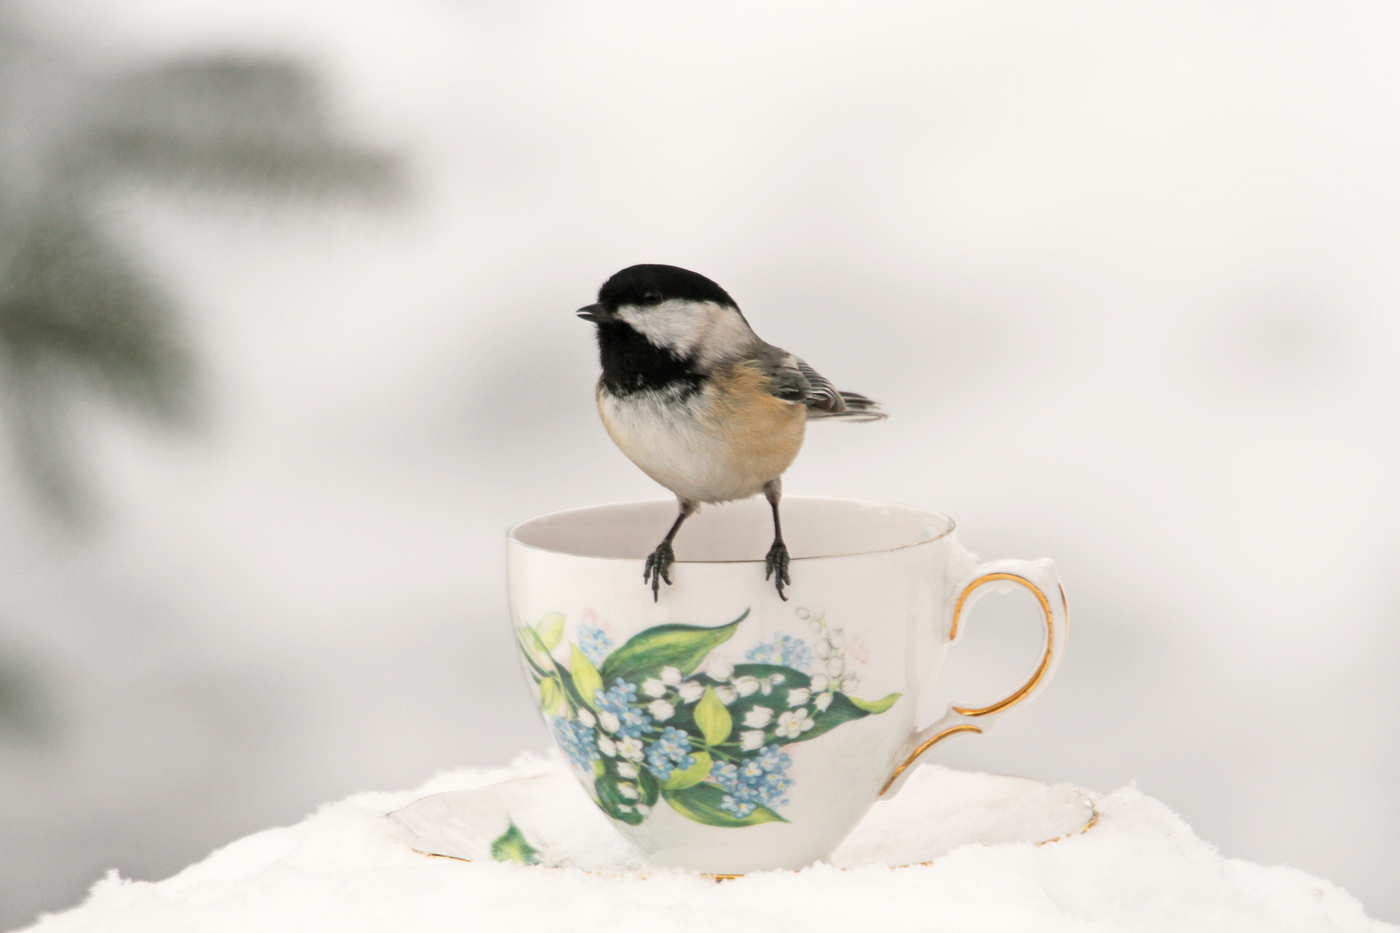 Chickadee at Teacup #23